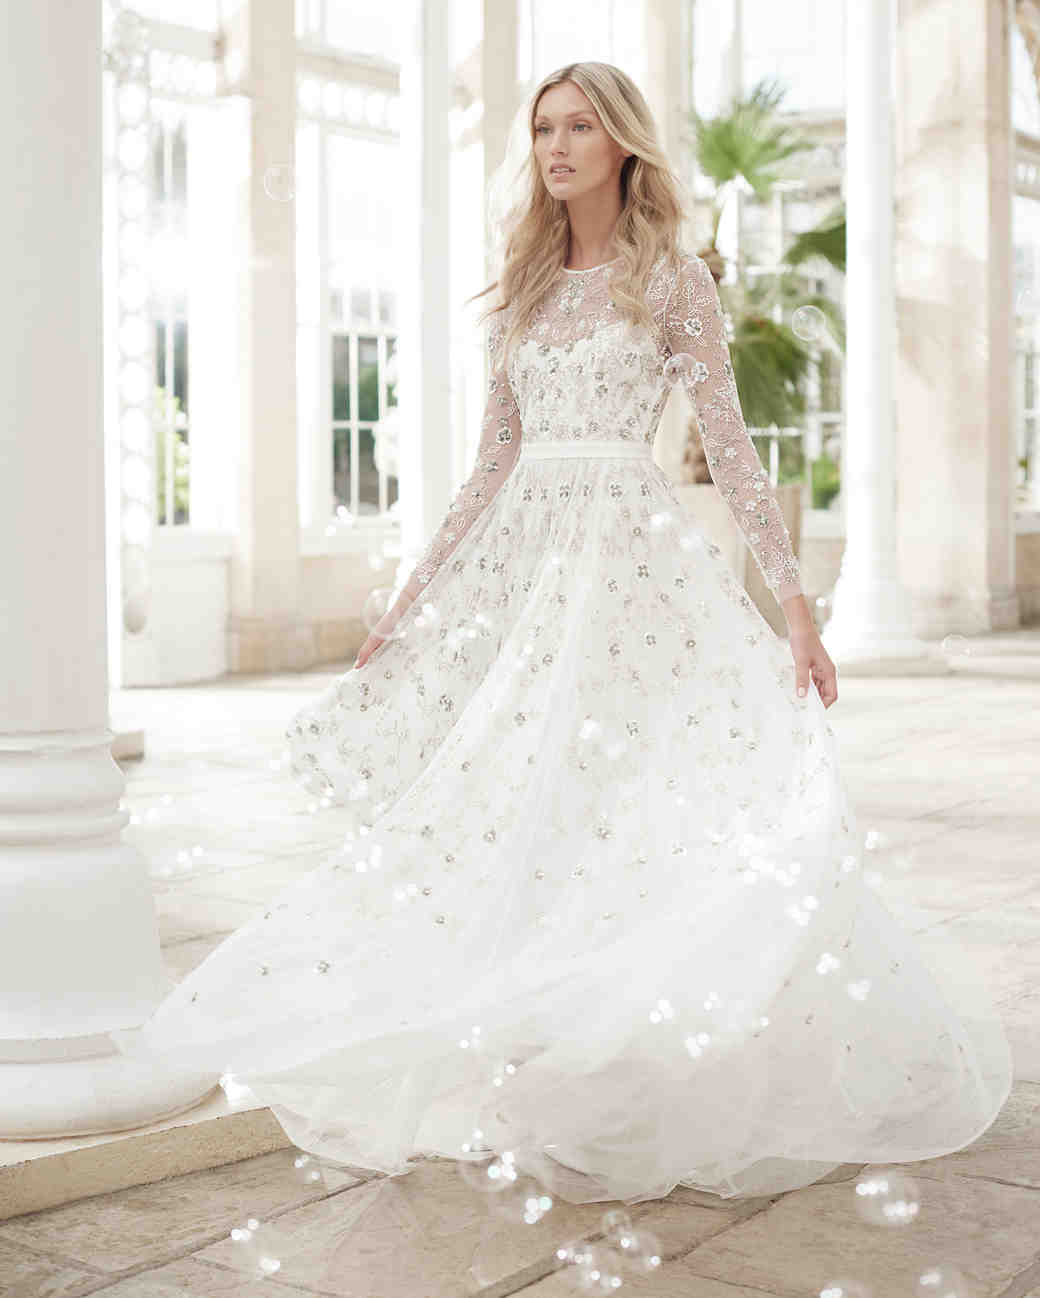 Wedding Dress: Needle And Thread's Spring/Summer 2017 Wedding Dress